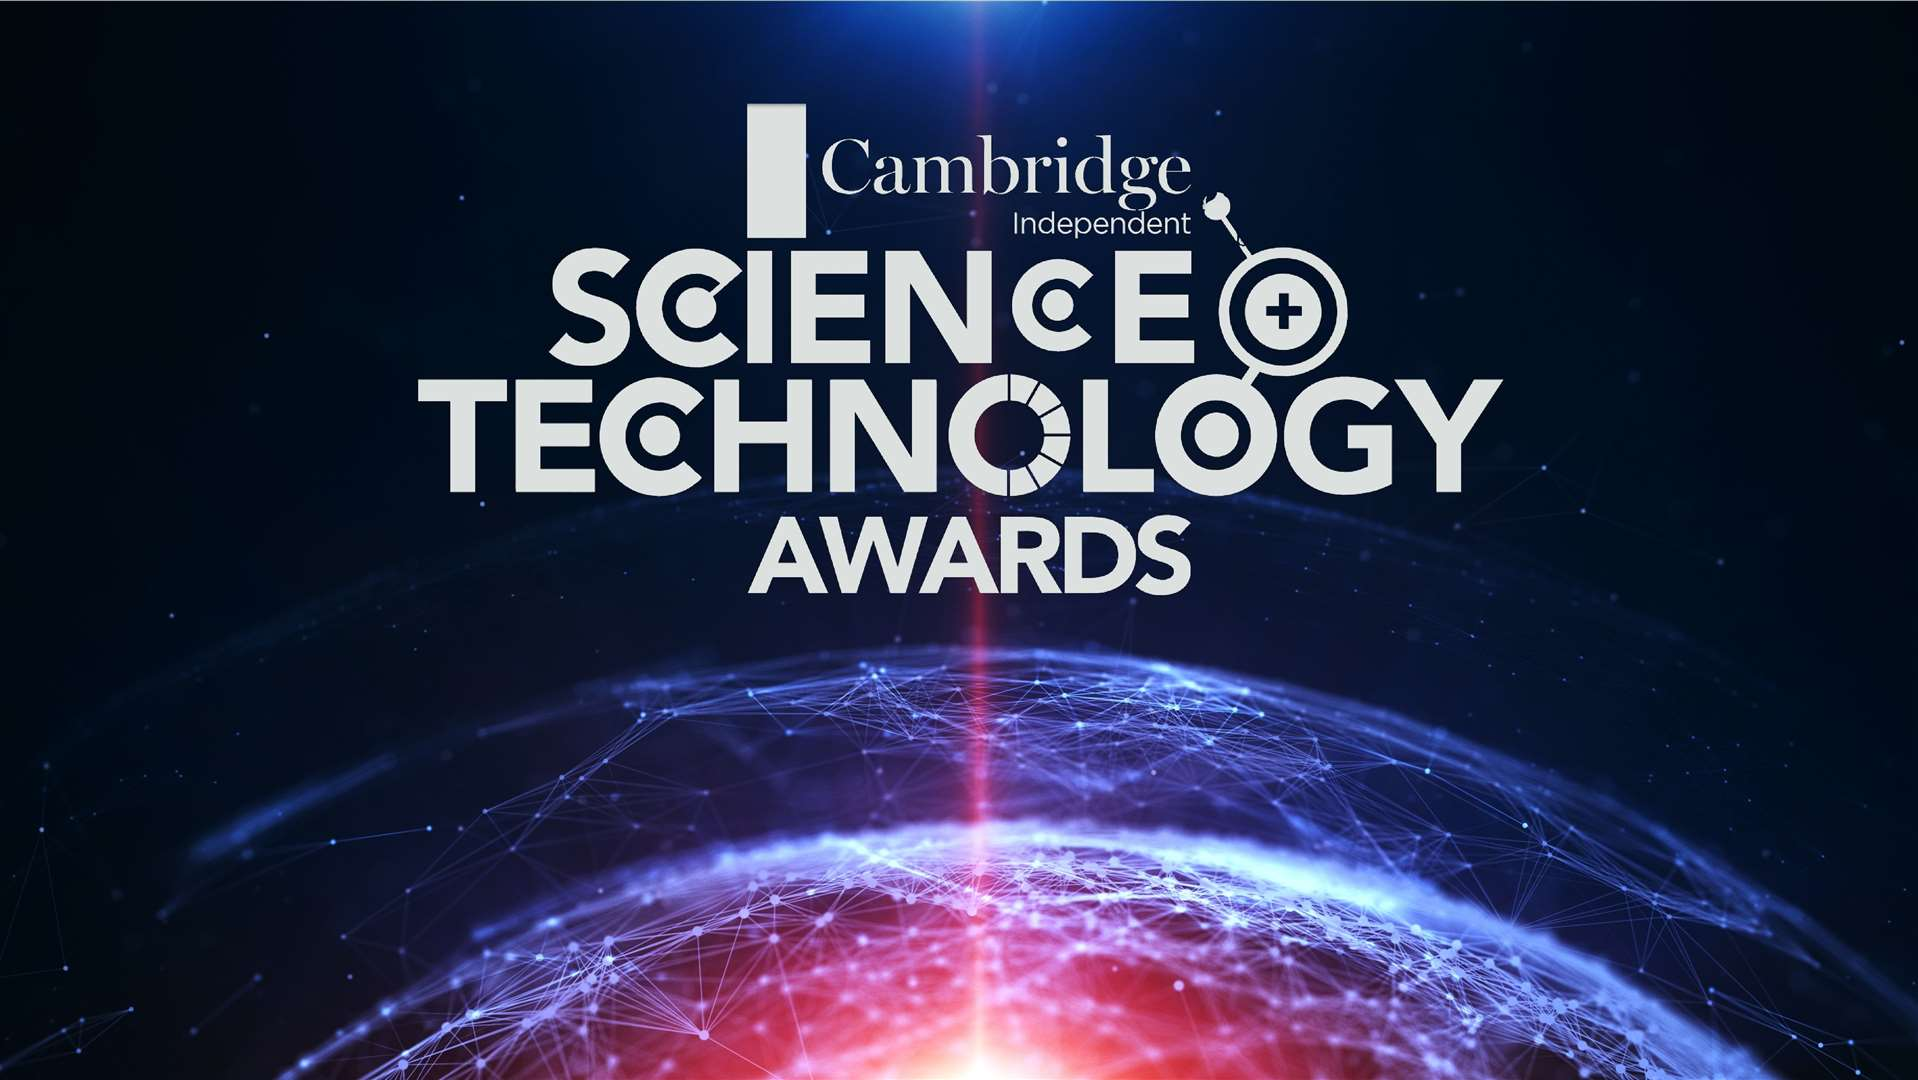 Cambridge Independent Science and Technology Awards